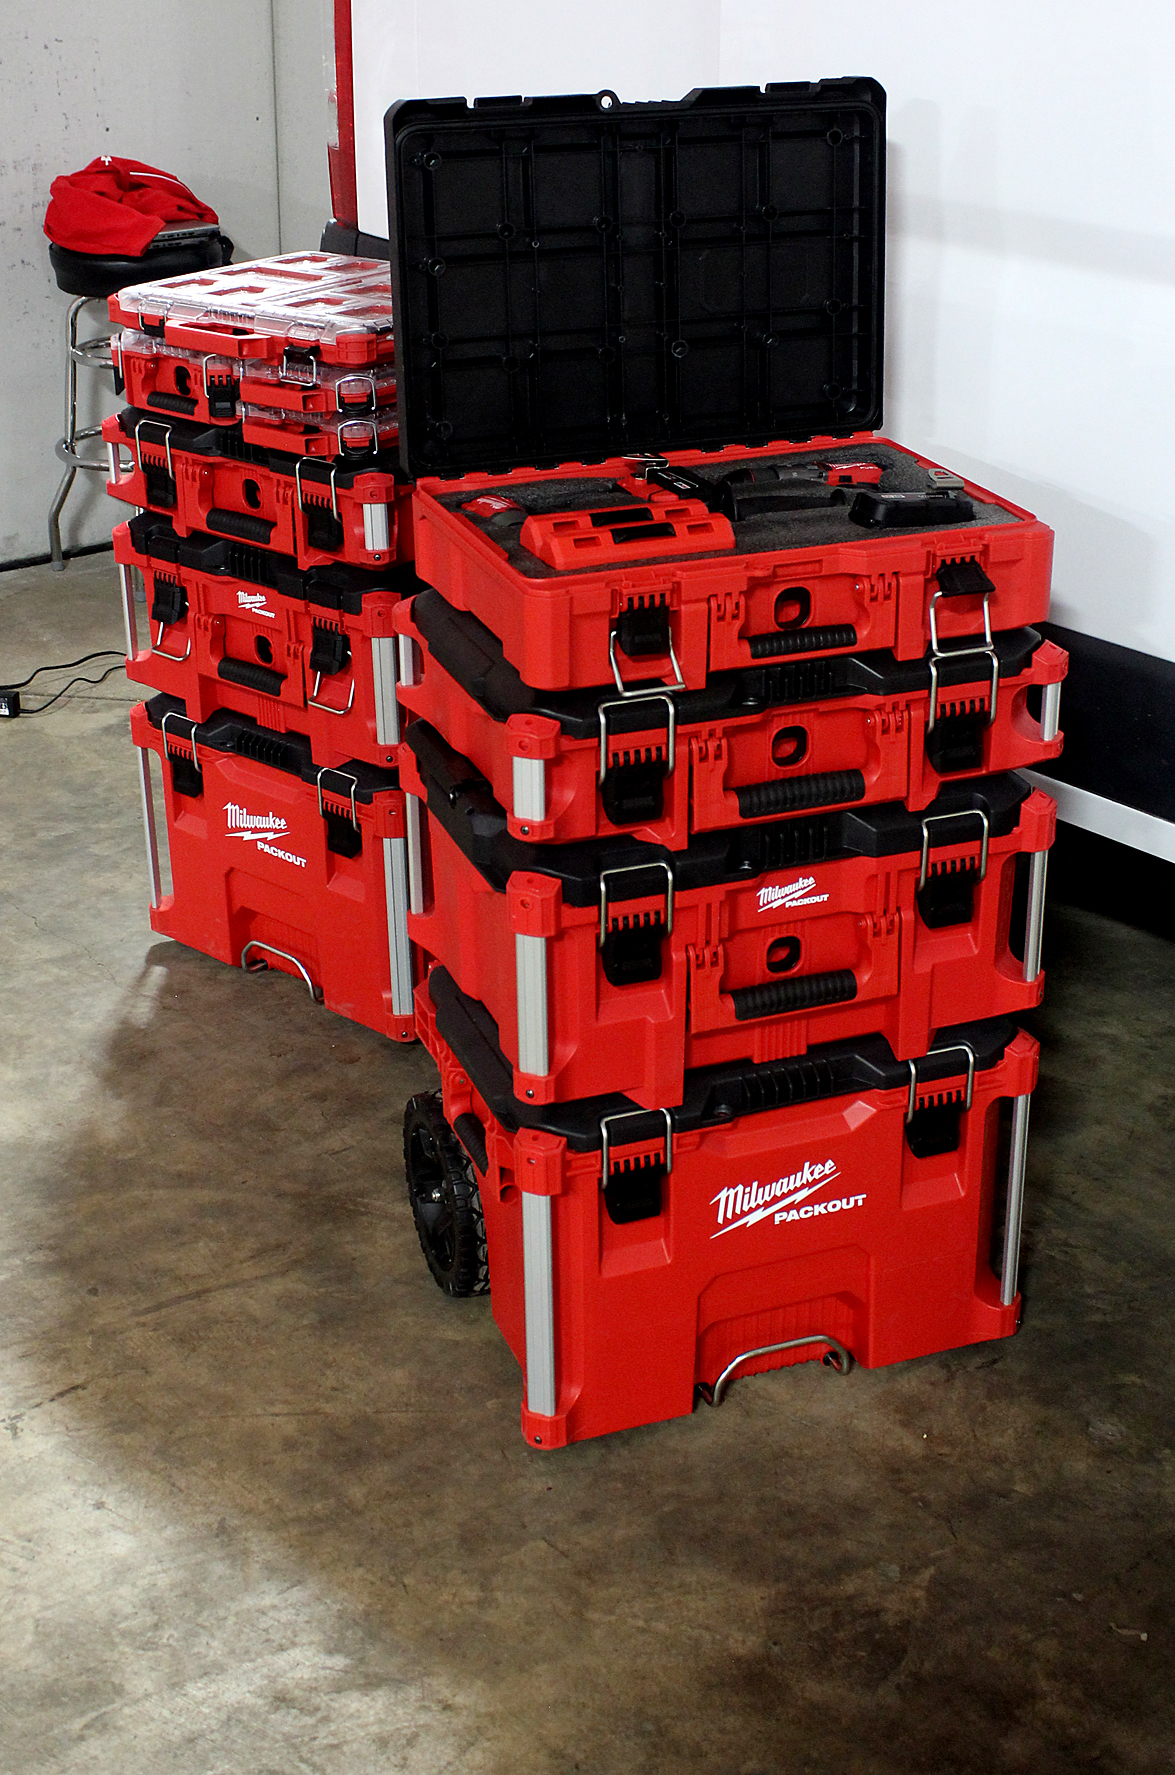 Milwaukee Tool also had several of its tool storage solutions on display, including its new PACKOUT Modular Storage Expansion coming out between September and December.